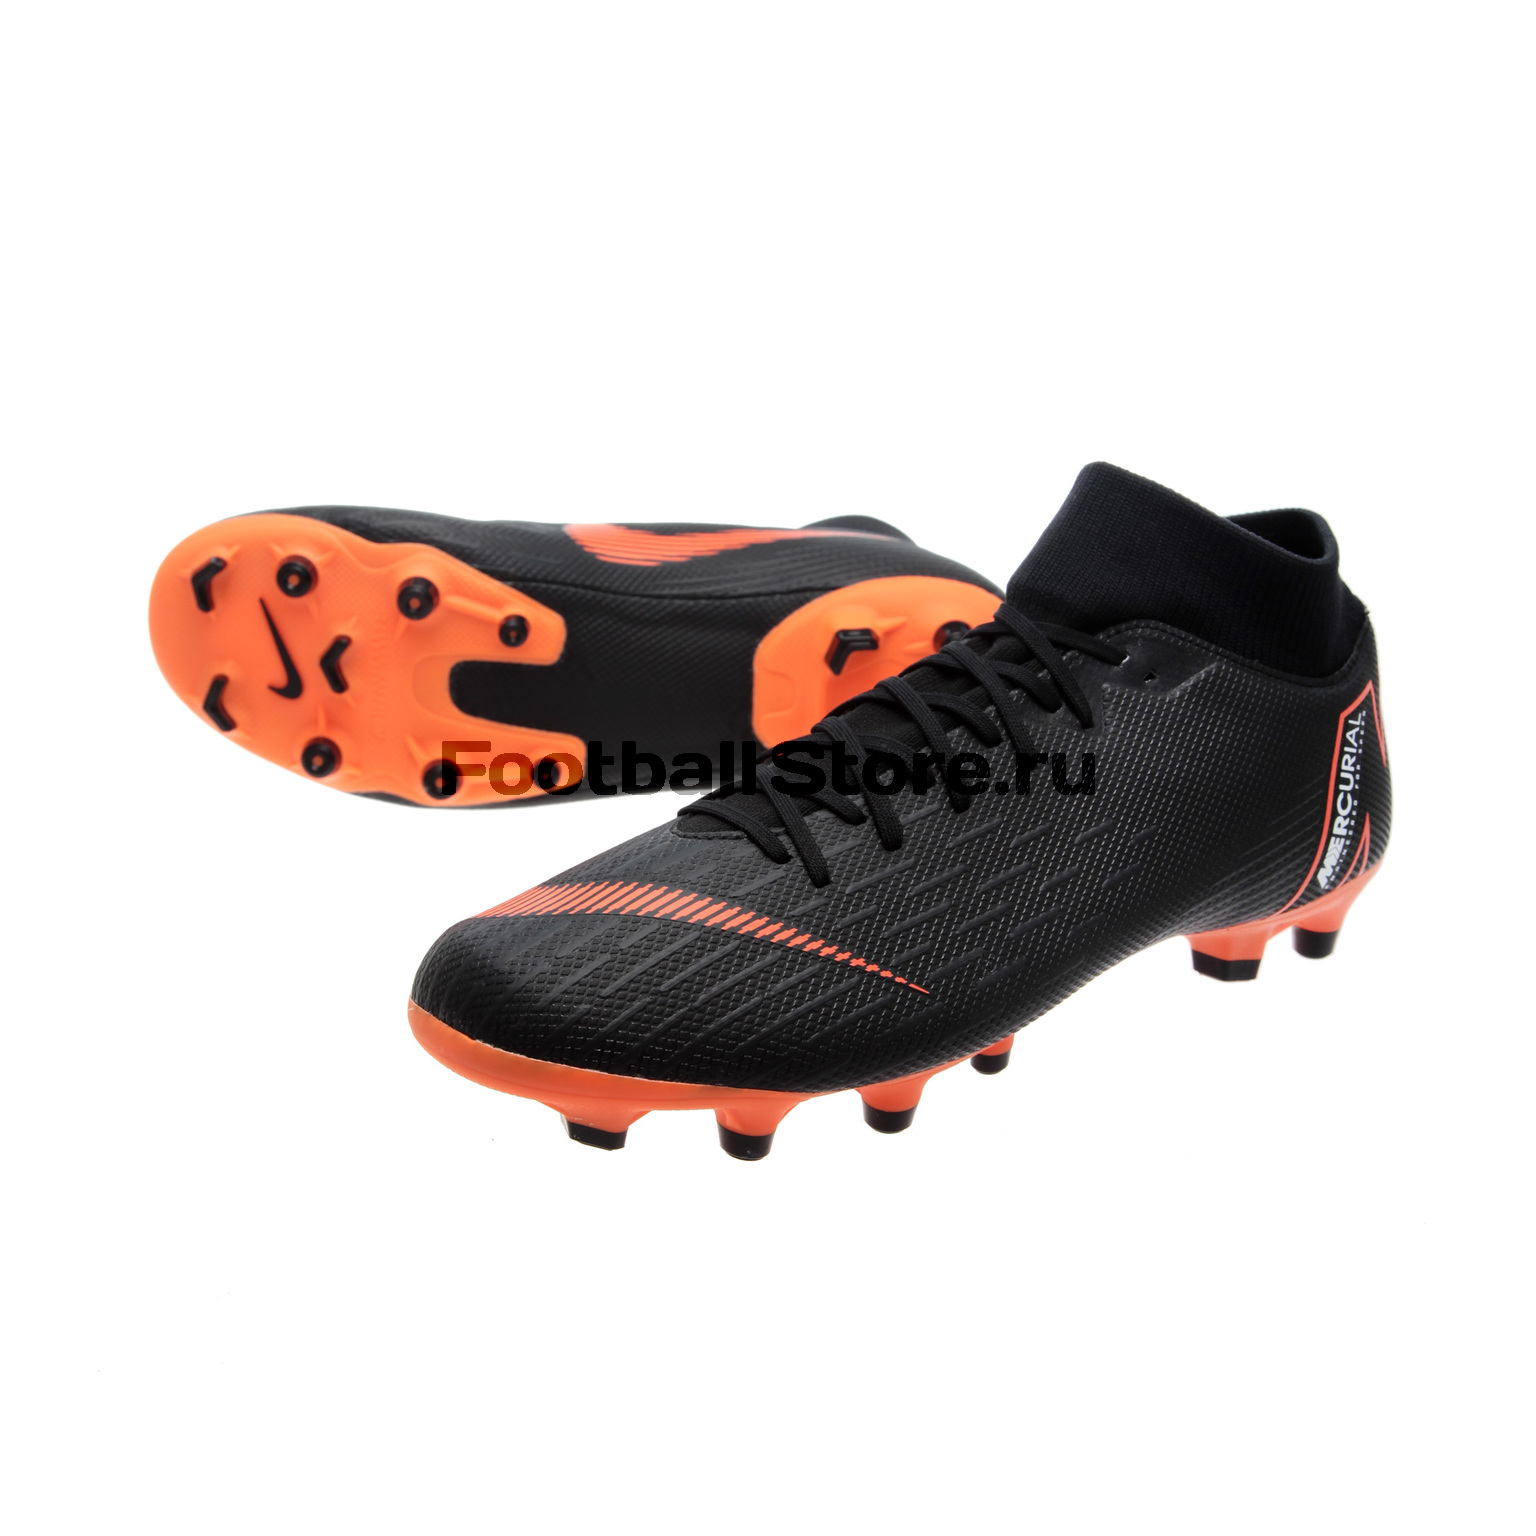 Бутсы Nike Superfly 6 Academy FG/MG  AH7362-081 бутсы nike superfly academy gs cr7 jr fg mg aj3111 390